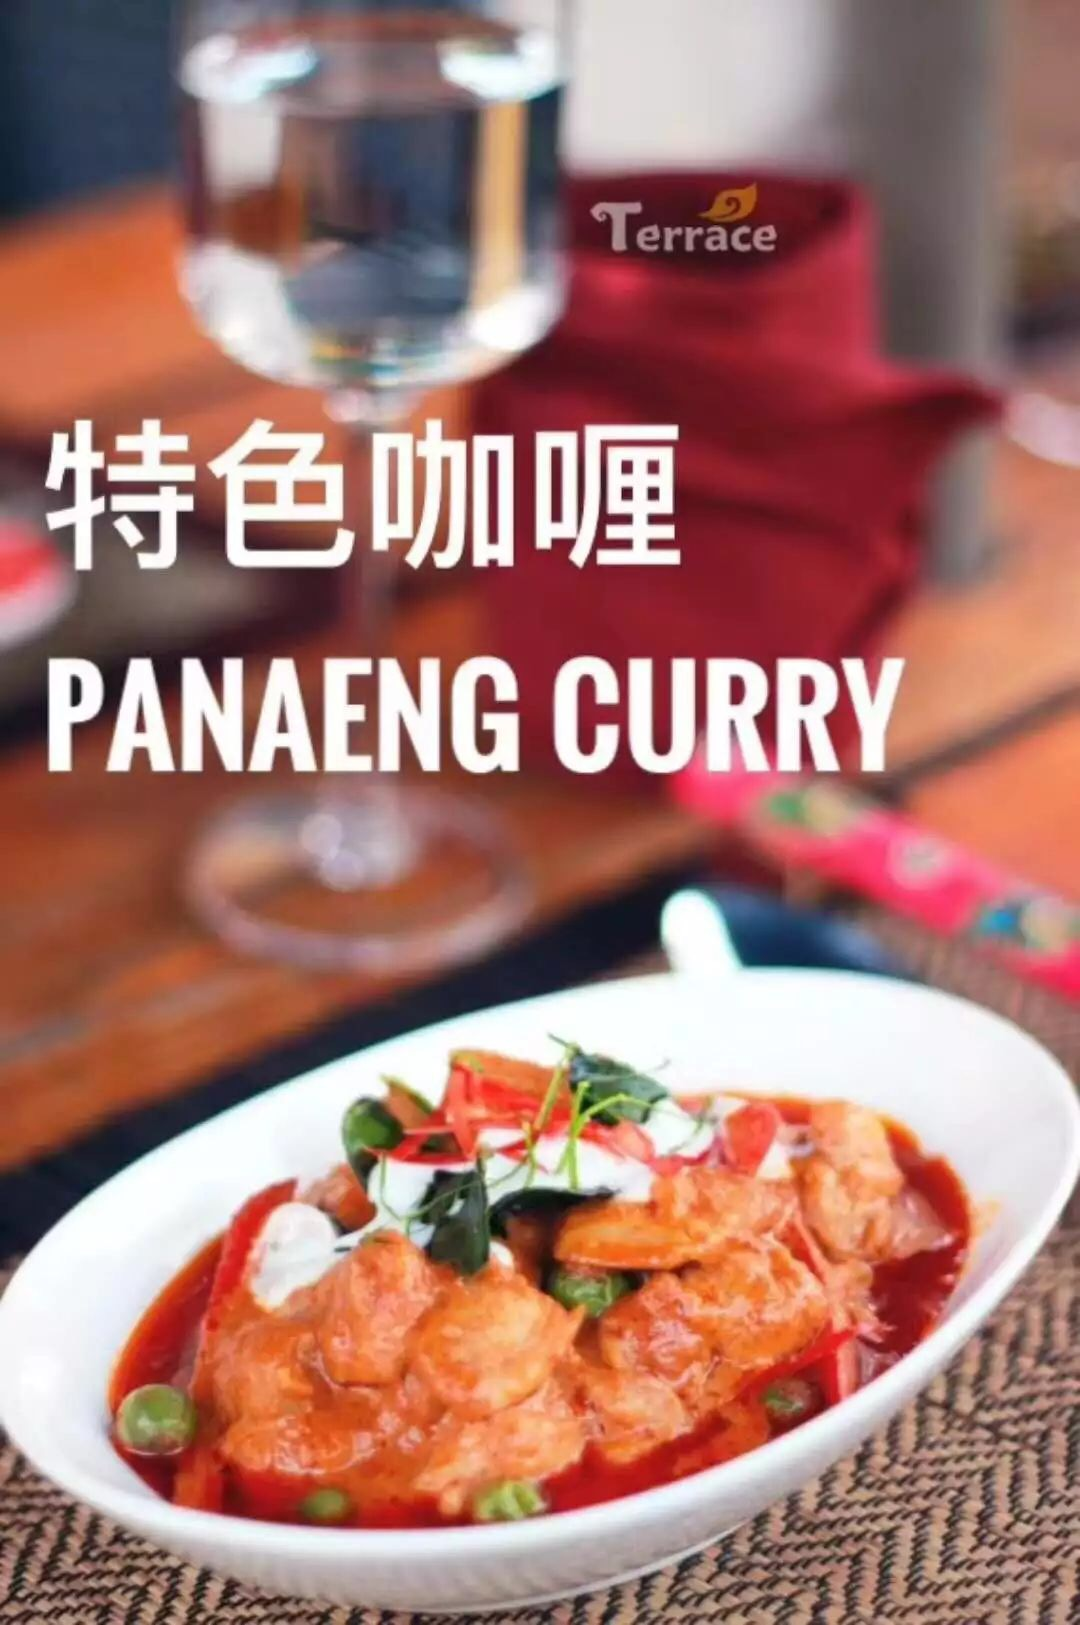 【Terrace】40%OFF All Curries